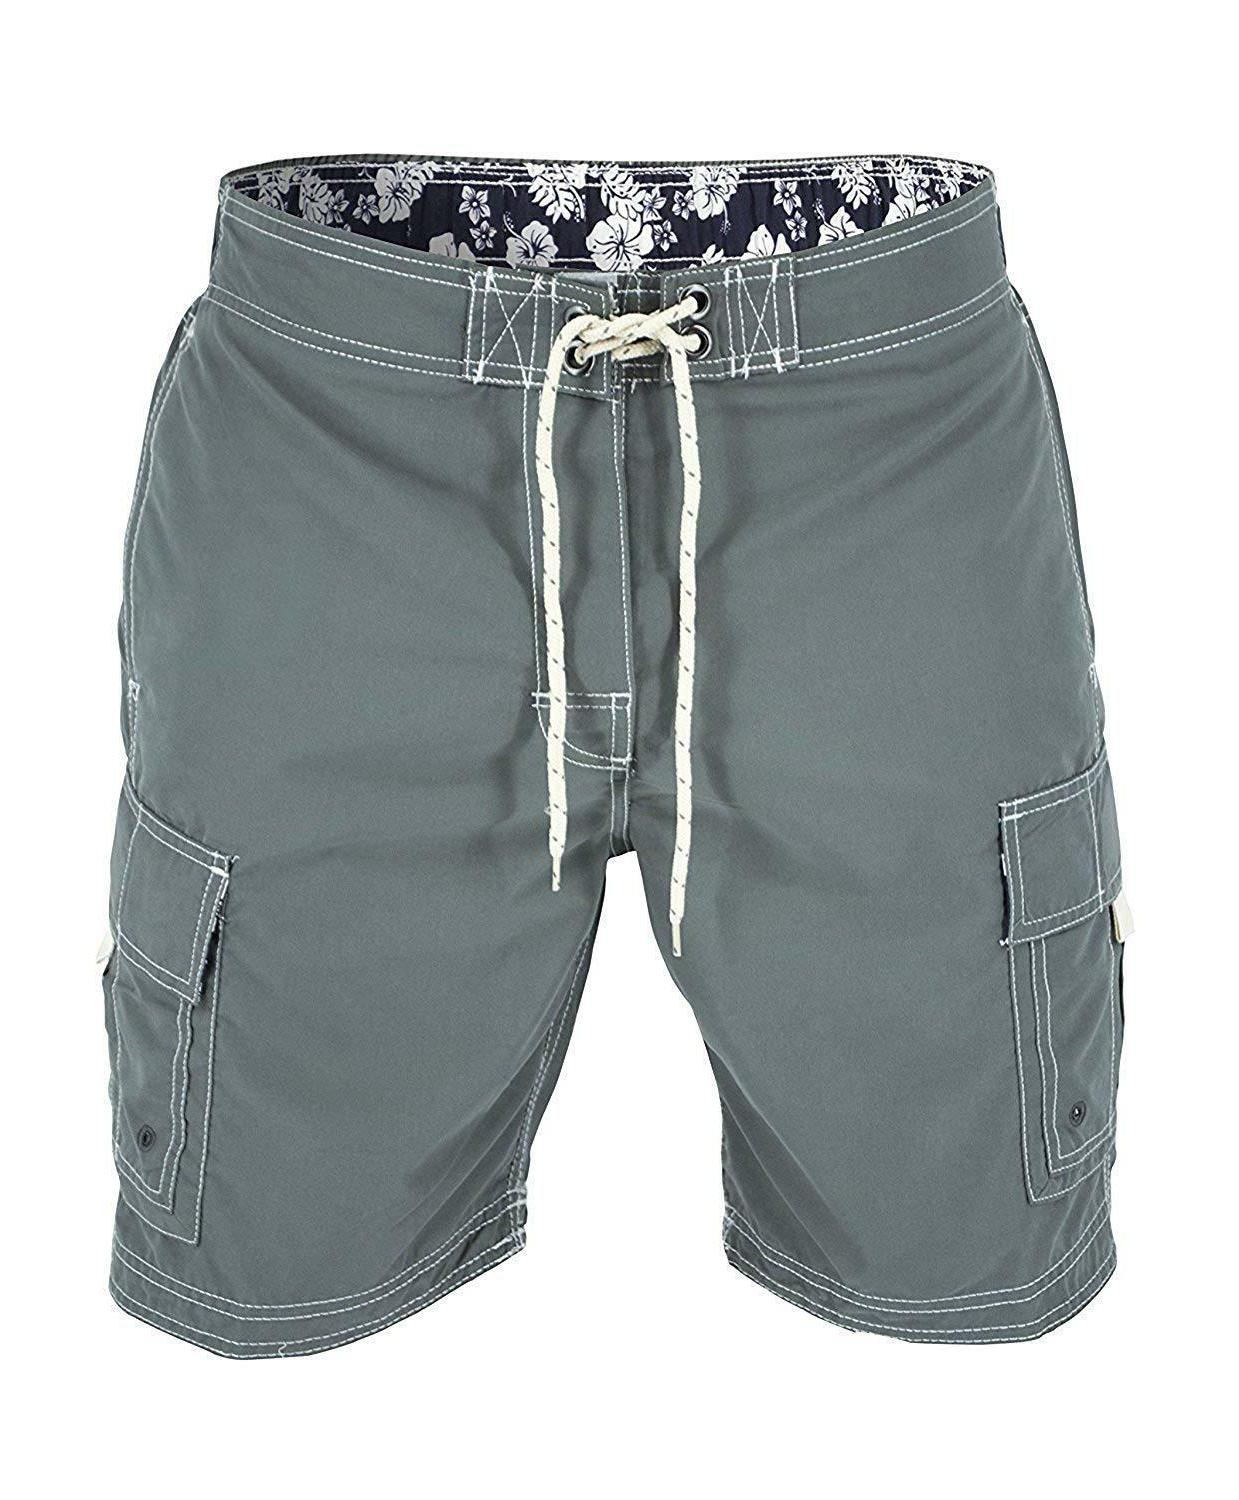 US Color Cargo Style Board Shorts